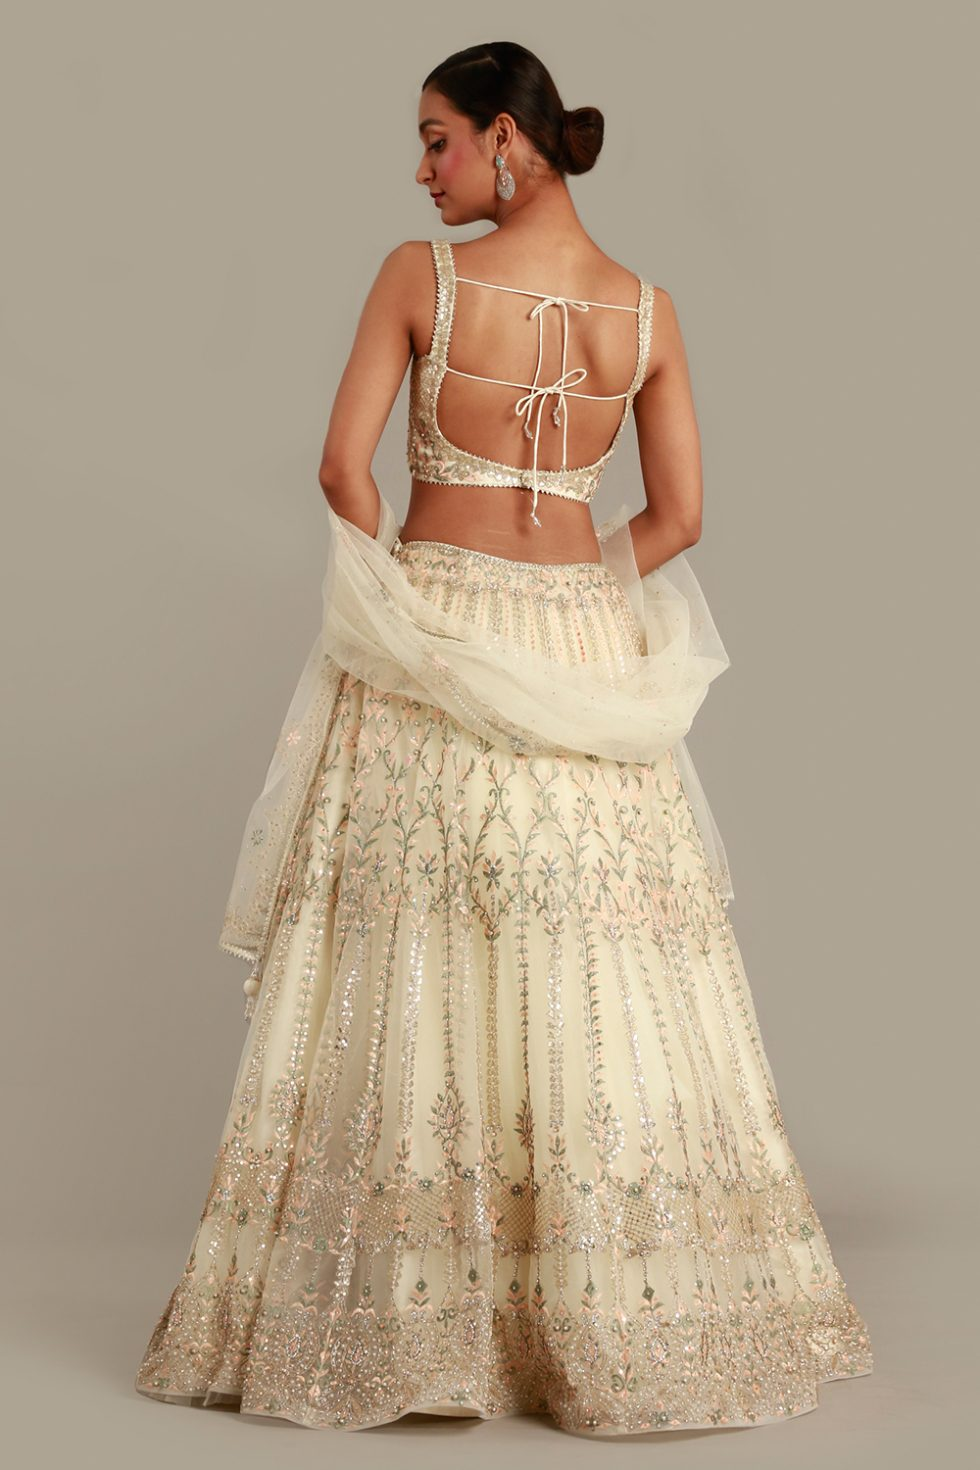 Cream ivory lehenga set with katori cut blouse, contrast embroidery, matching dupatta and silver highlights